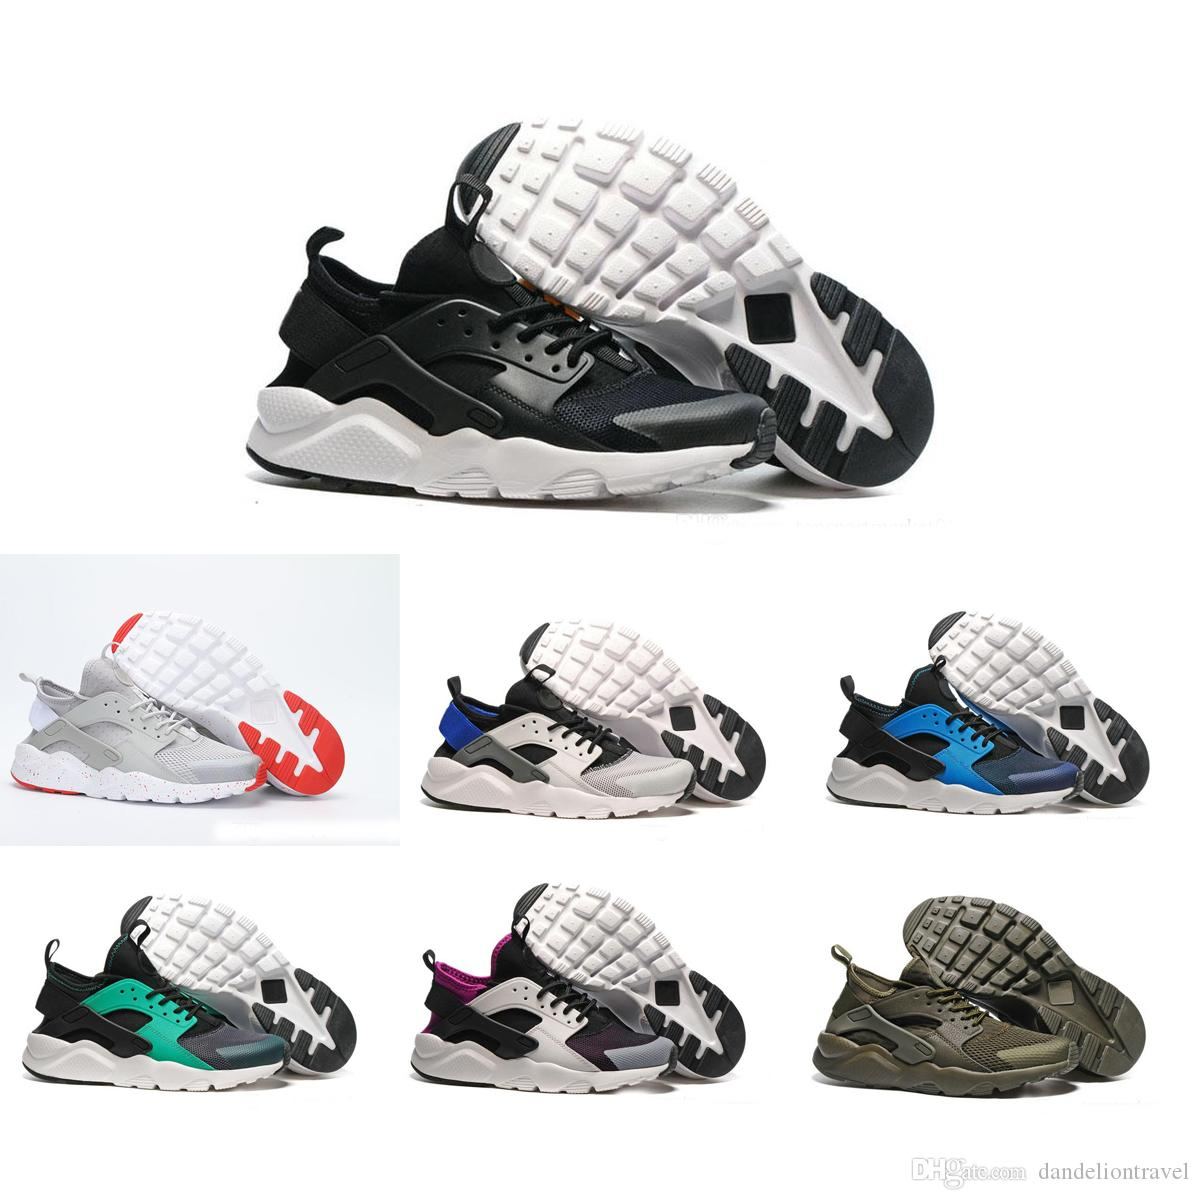 the latest b4fea cd9bc Acquista With Box Nike Air Huarache 1 2 3 I II III Scarpe Da Corsa Air  Huarache Ultra Triple Bianco Nero Huraches Scarpe Da Corsa Running Uomo  Donna Scarpe ...